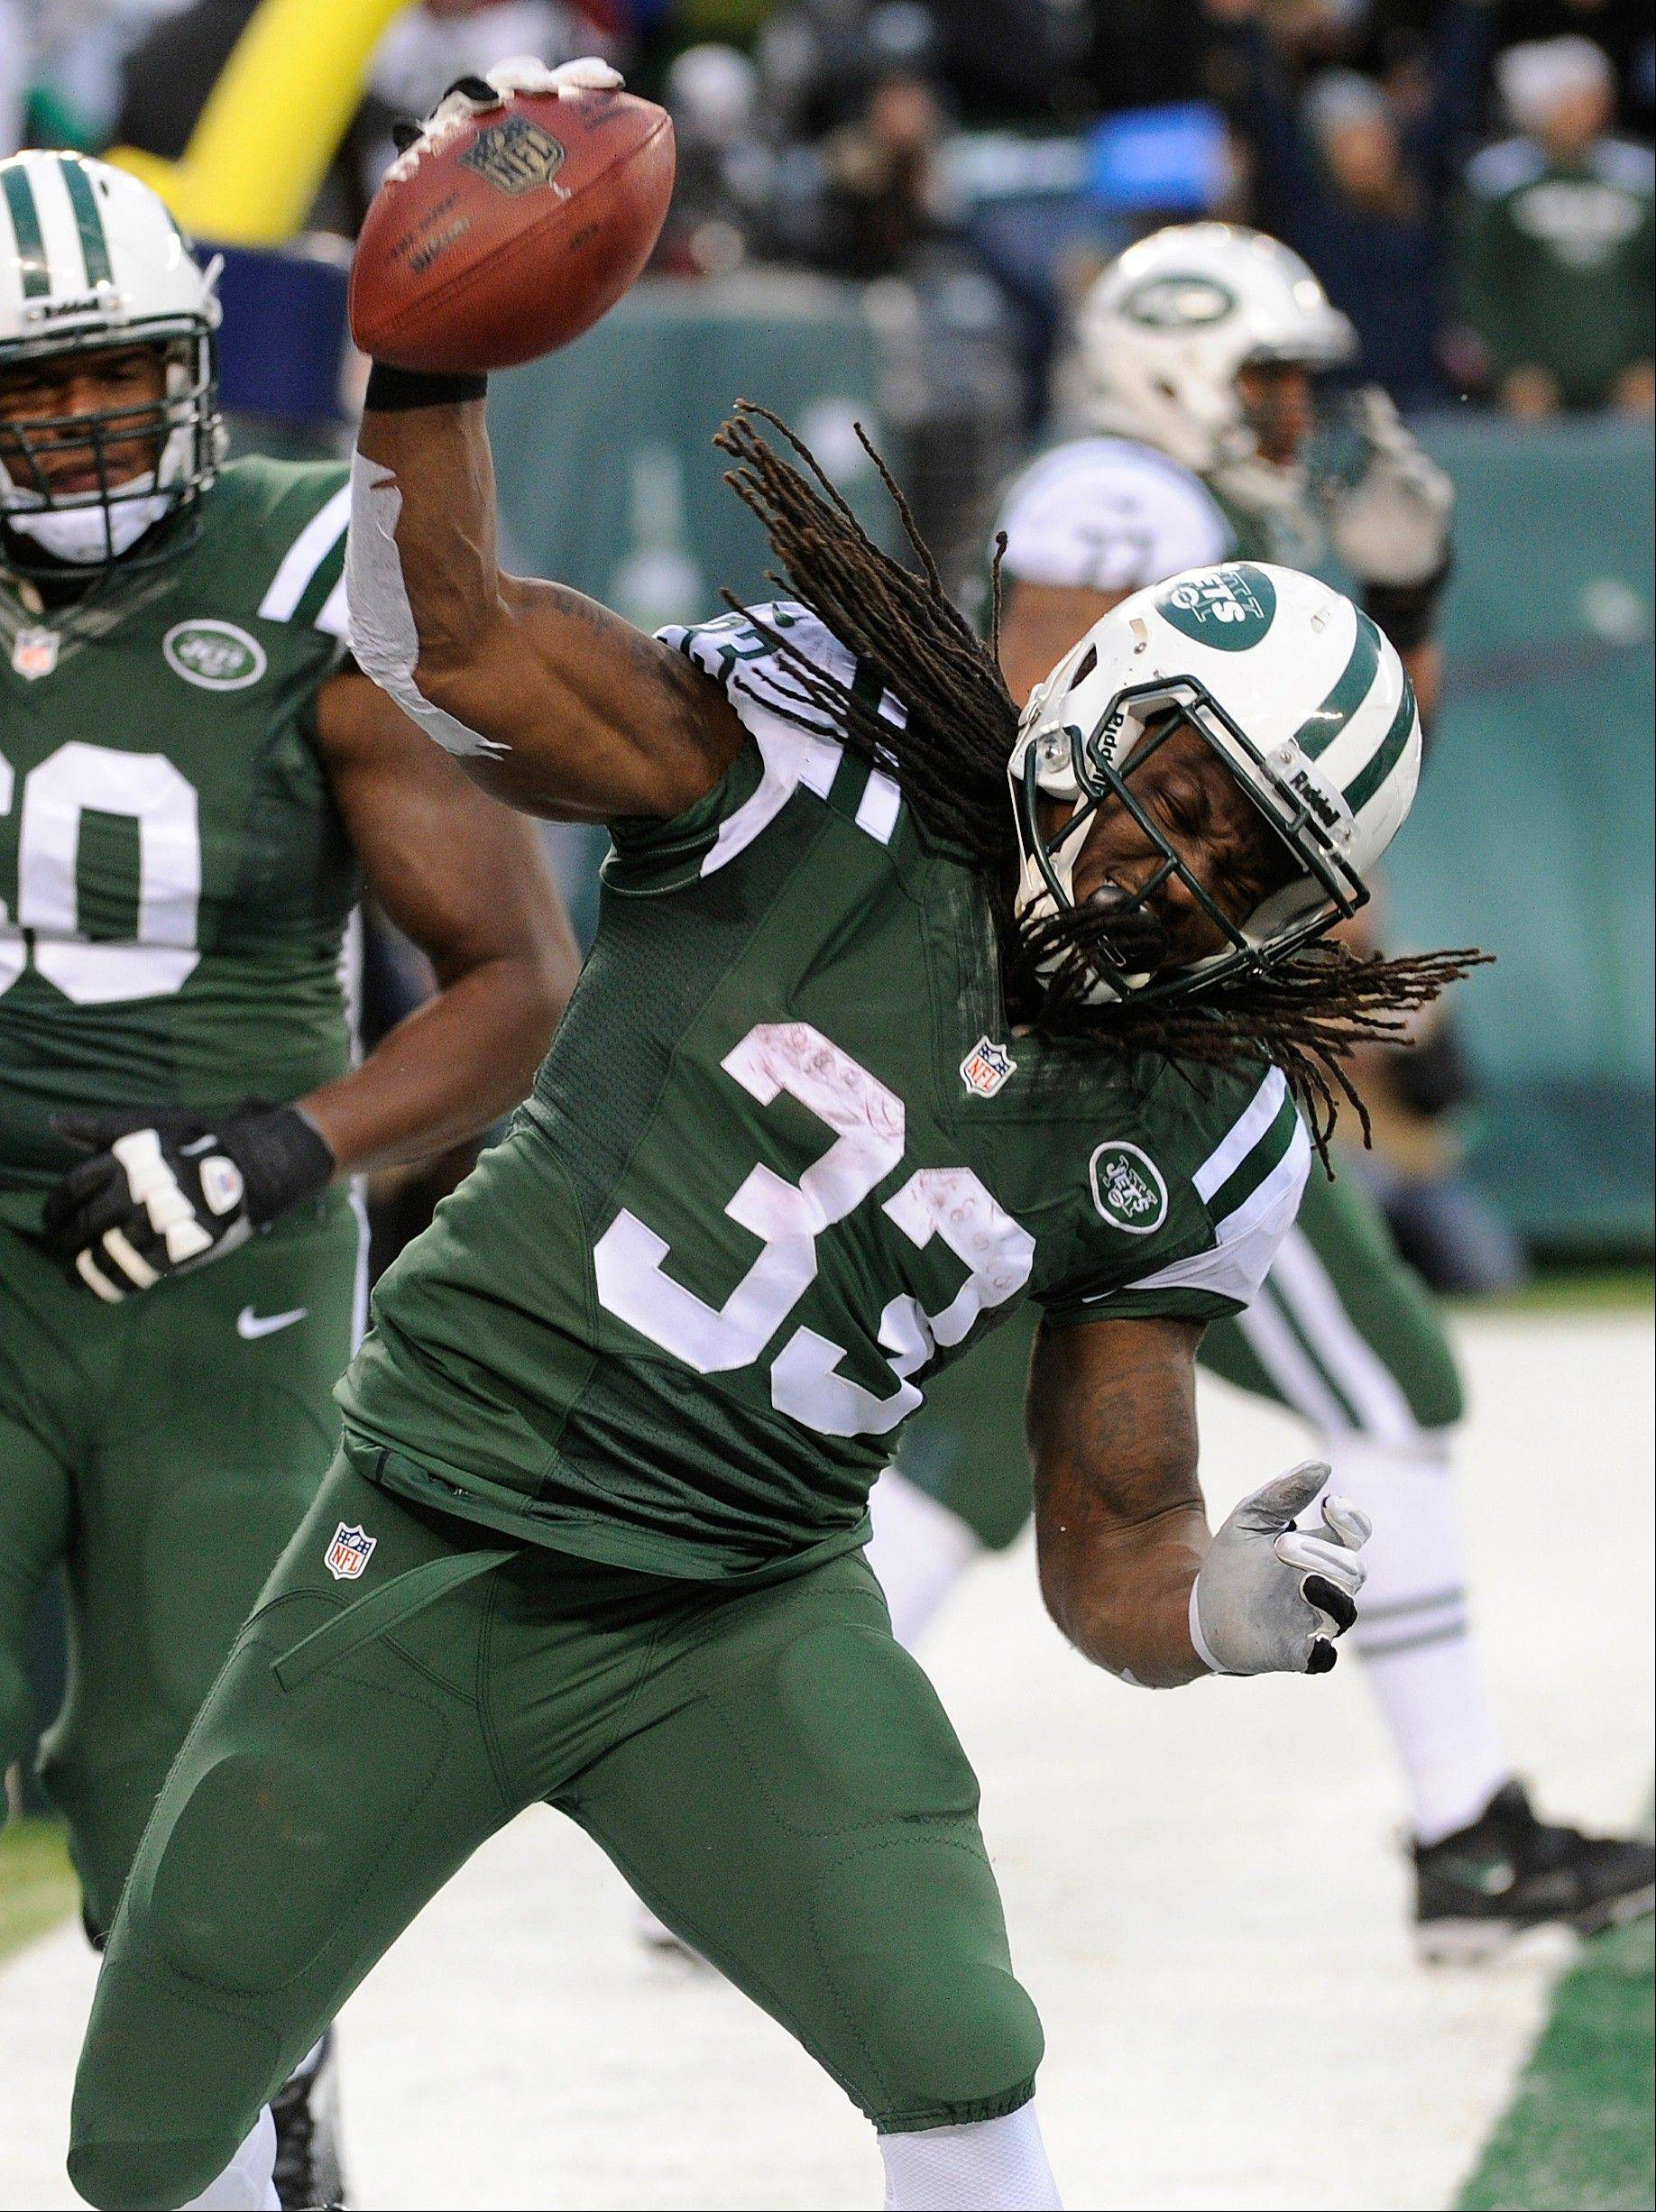 New York Jets running back Chris Ivory (33) spikes the ball after scoring on a touchdown run against the Oakland Raiders during the second half of an NFL football game, Sunday, Dec. 8, 2013, in East Rutherford, N.J.